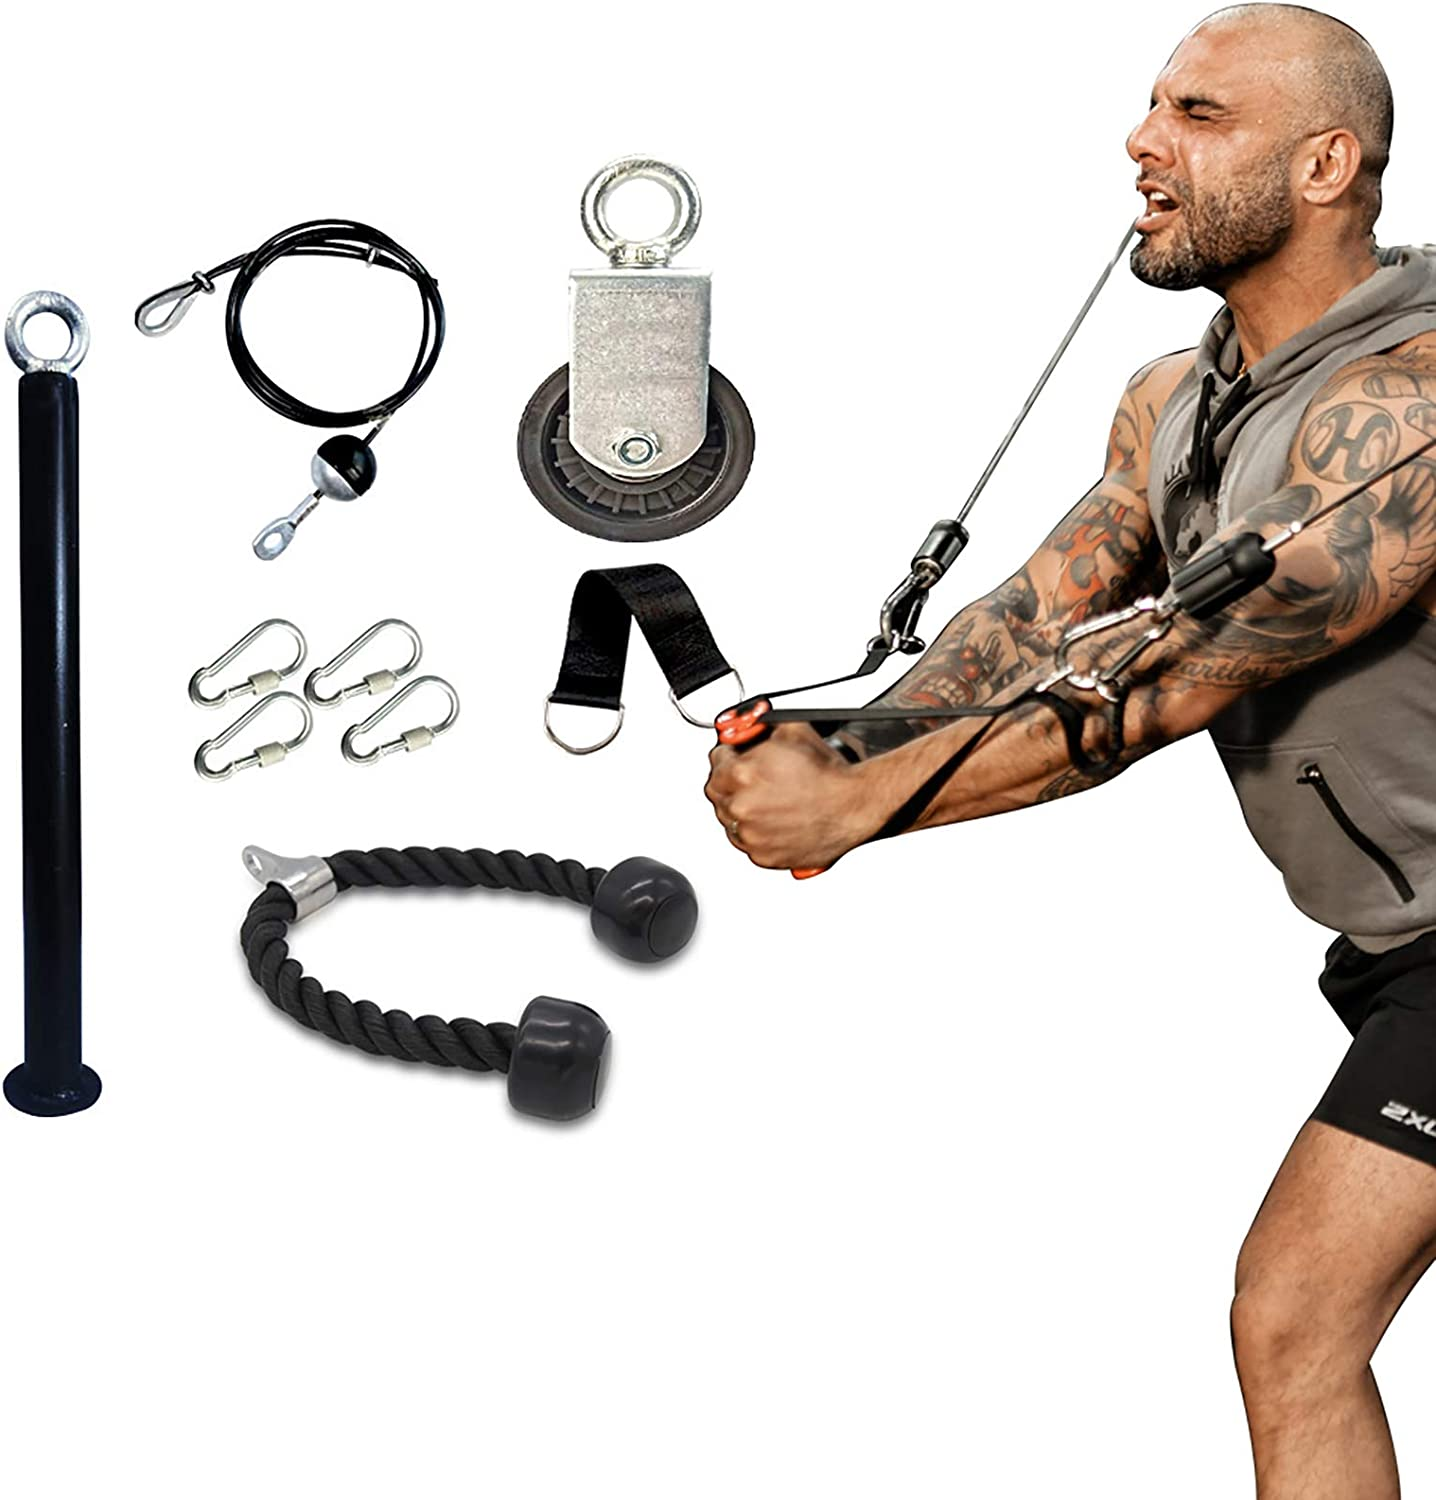 BAG WIZARD Fitness LAT and Lift Pulley System, Cable Machine with Upgraded Loading Pin for Triceps Pull Down, Biceps Curl, Back, Forearm, Shoulder-Home Gym Equipment